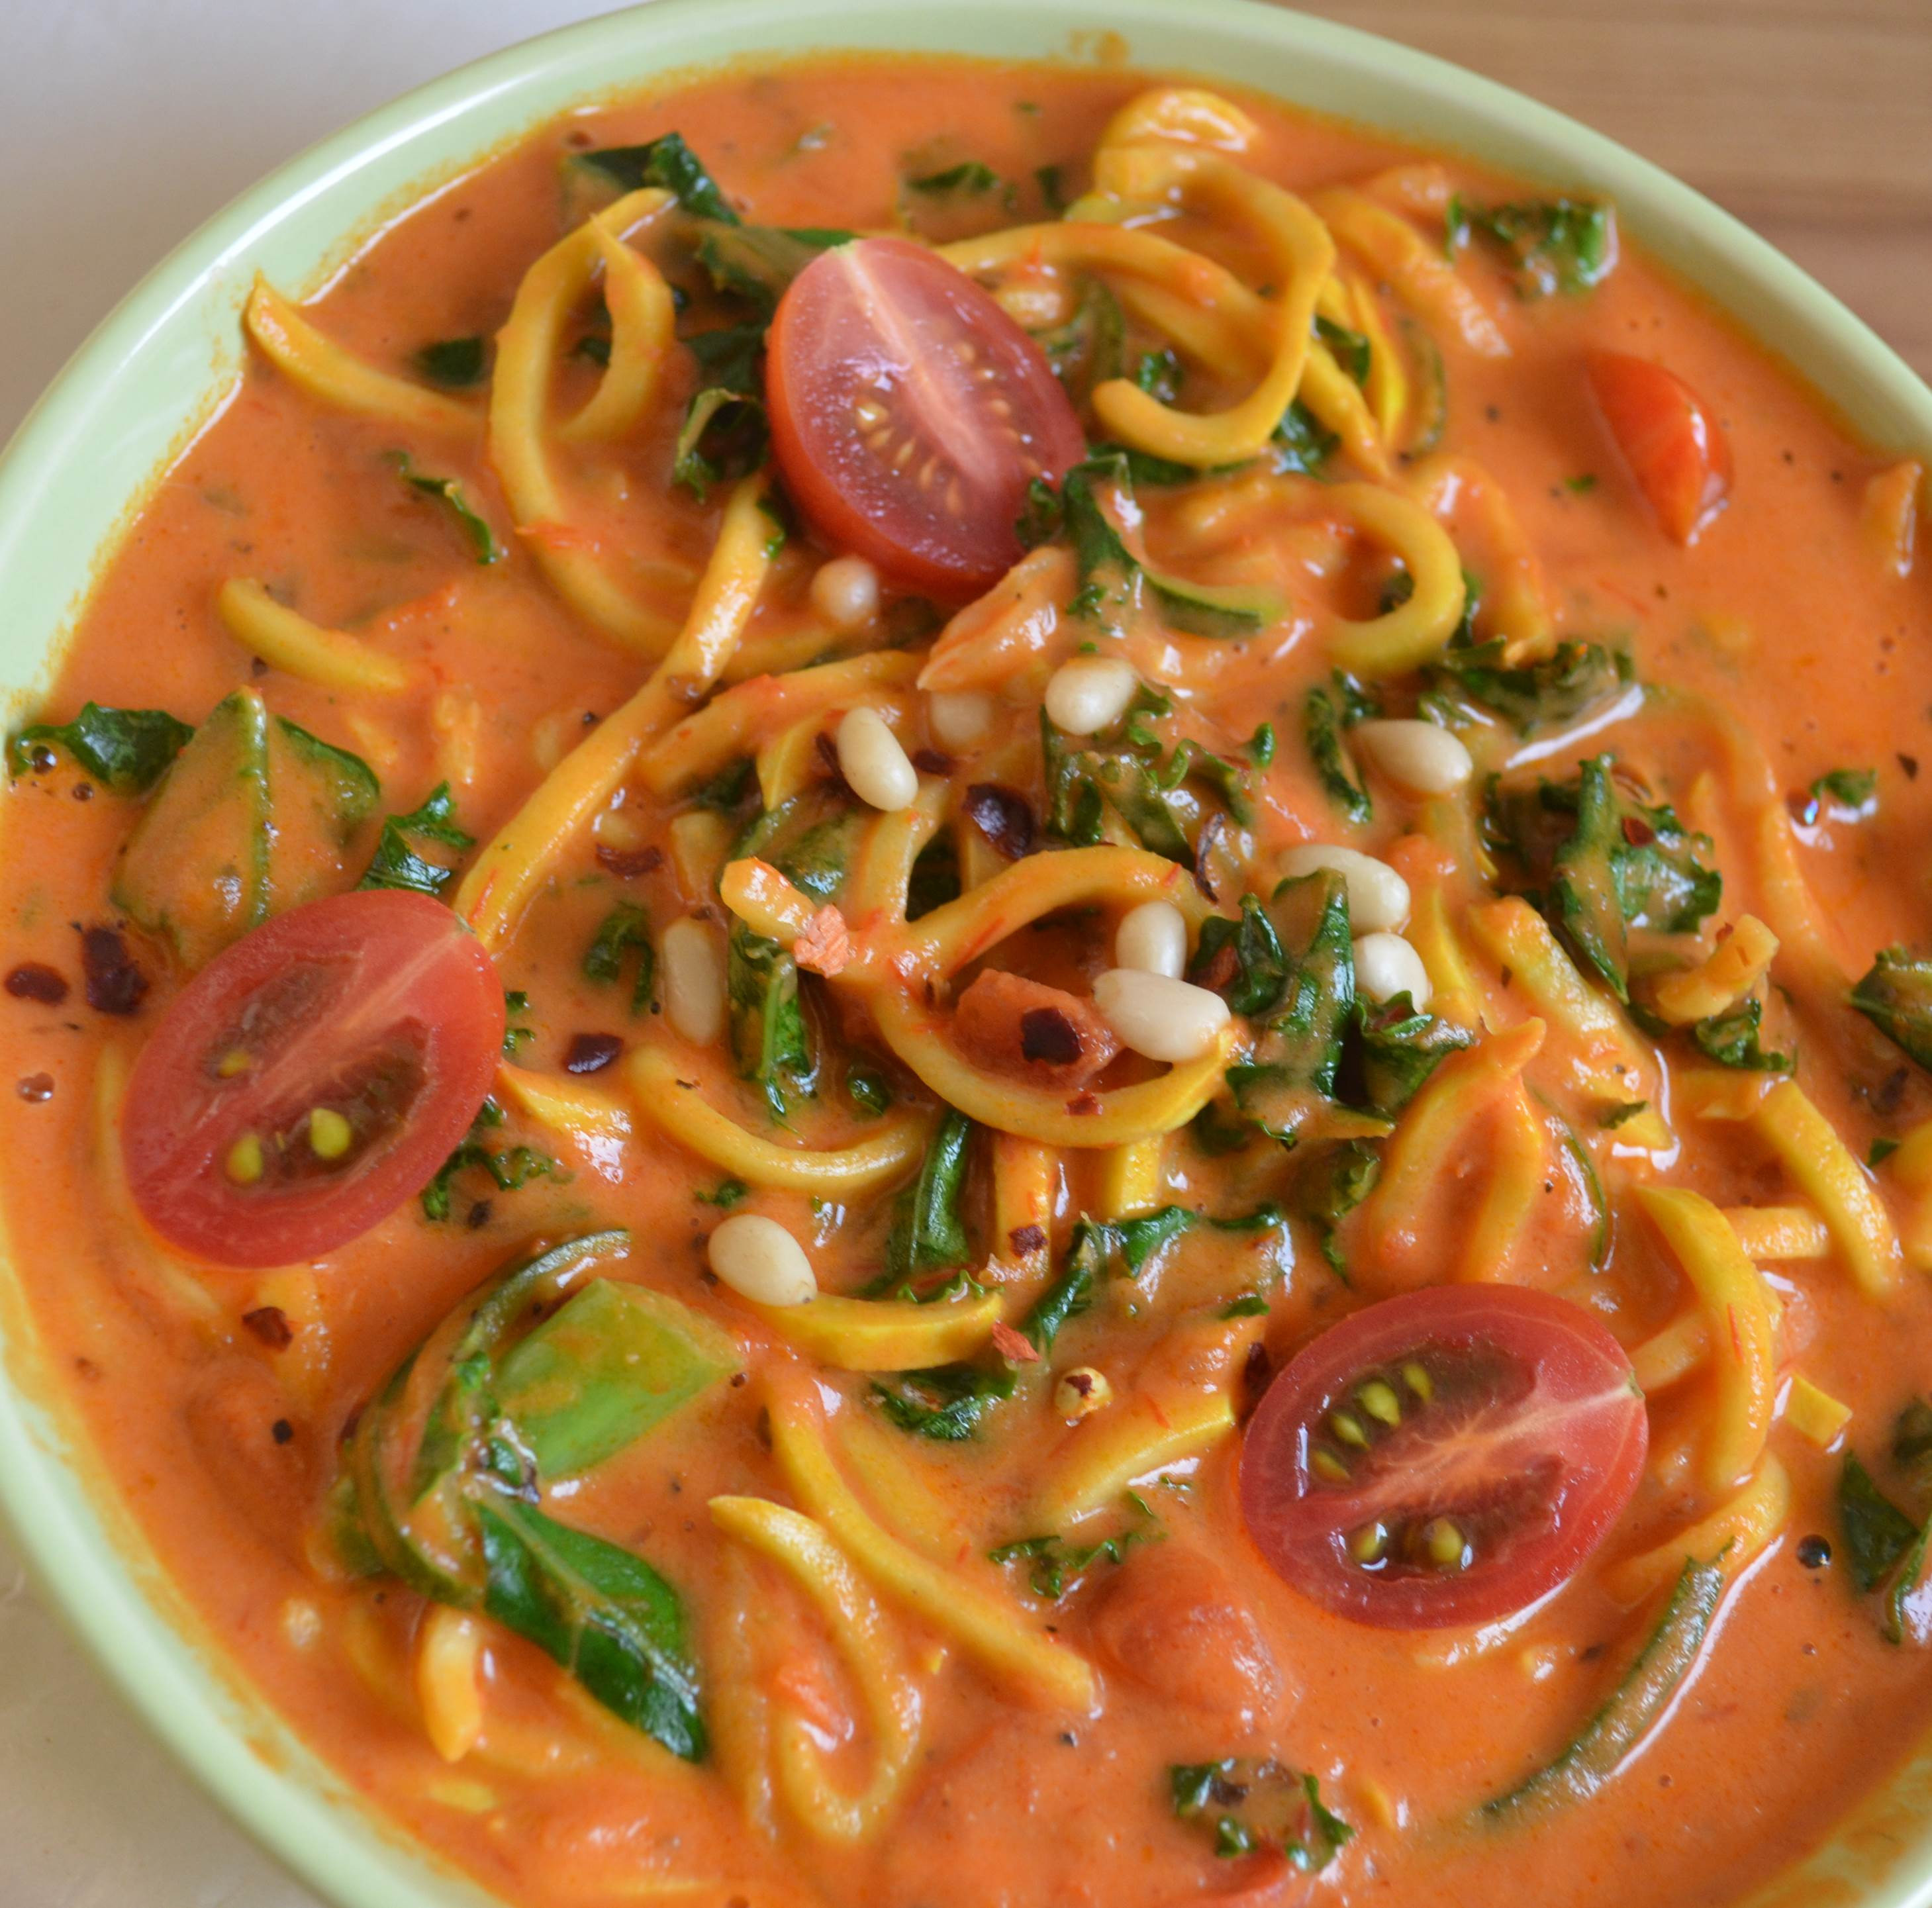 Paleo Vegan Recipes  Tomato Cream Sauce with Zucchini Noodles Paleo Vegan